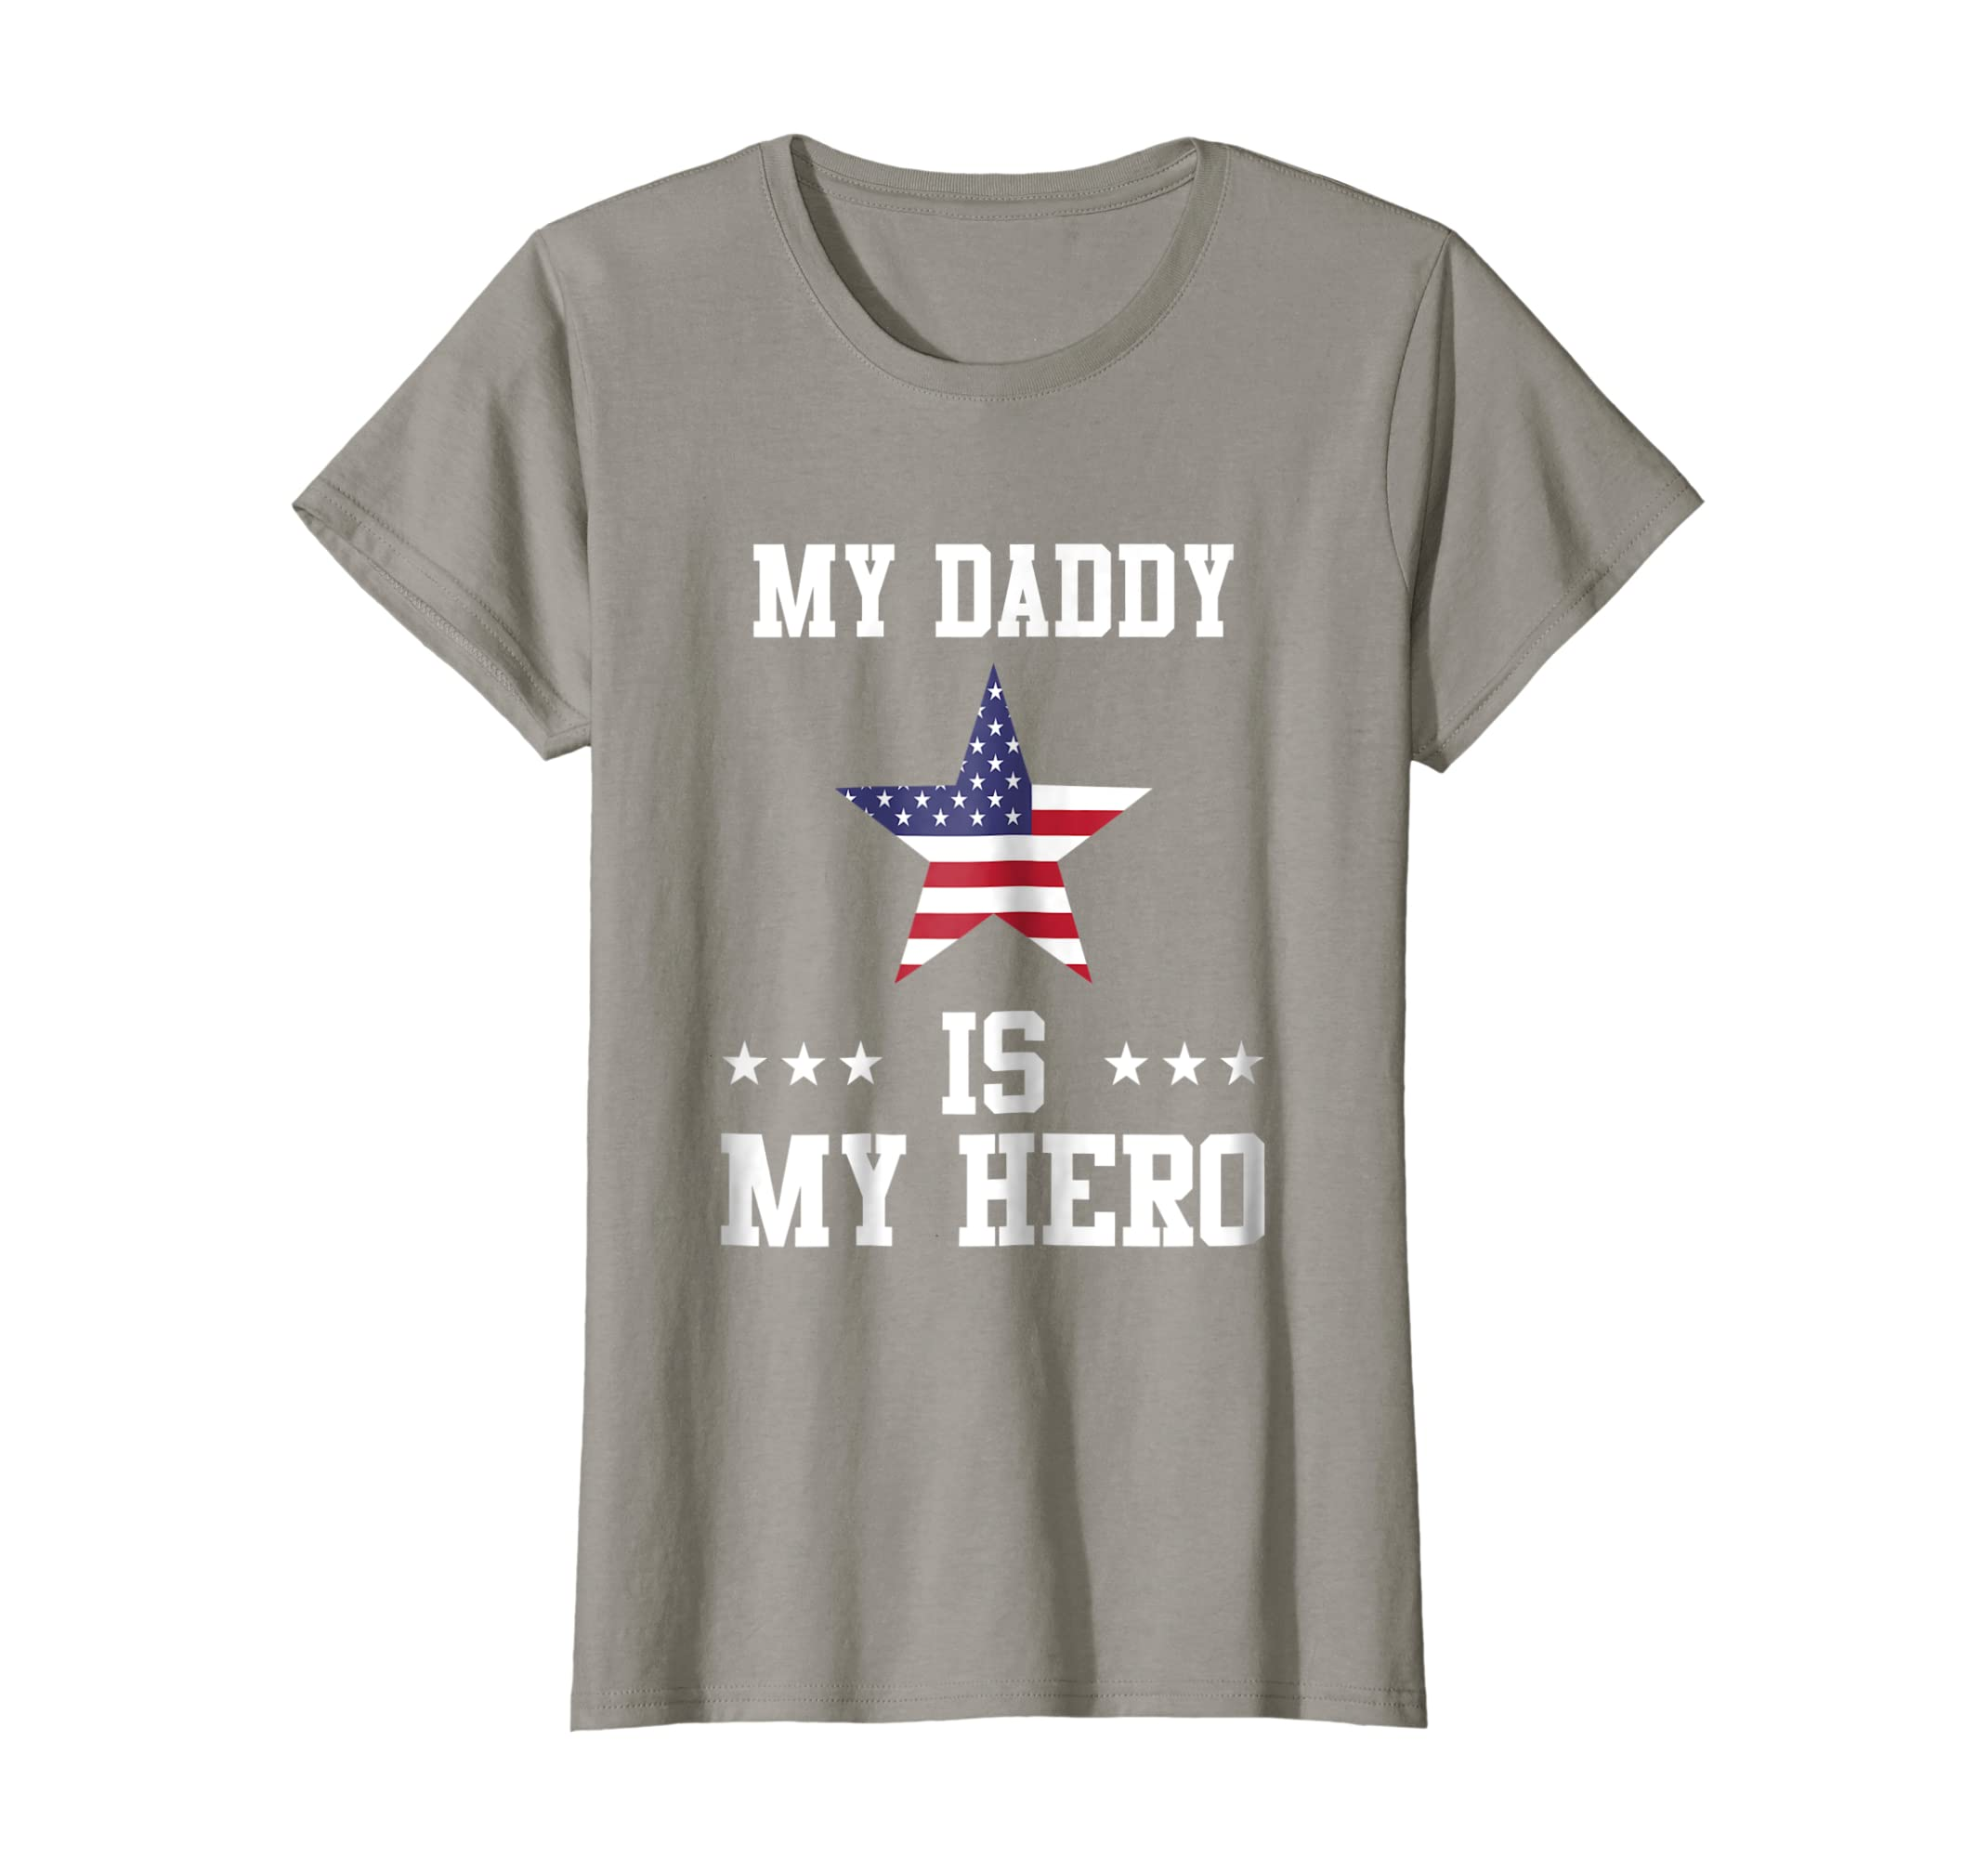 eb39c17d3 Amazon.com: My Daddy Is My Hero - Kids Proud Dad American Flag Gift:  Clothing